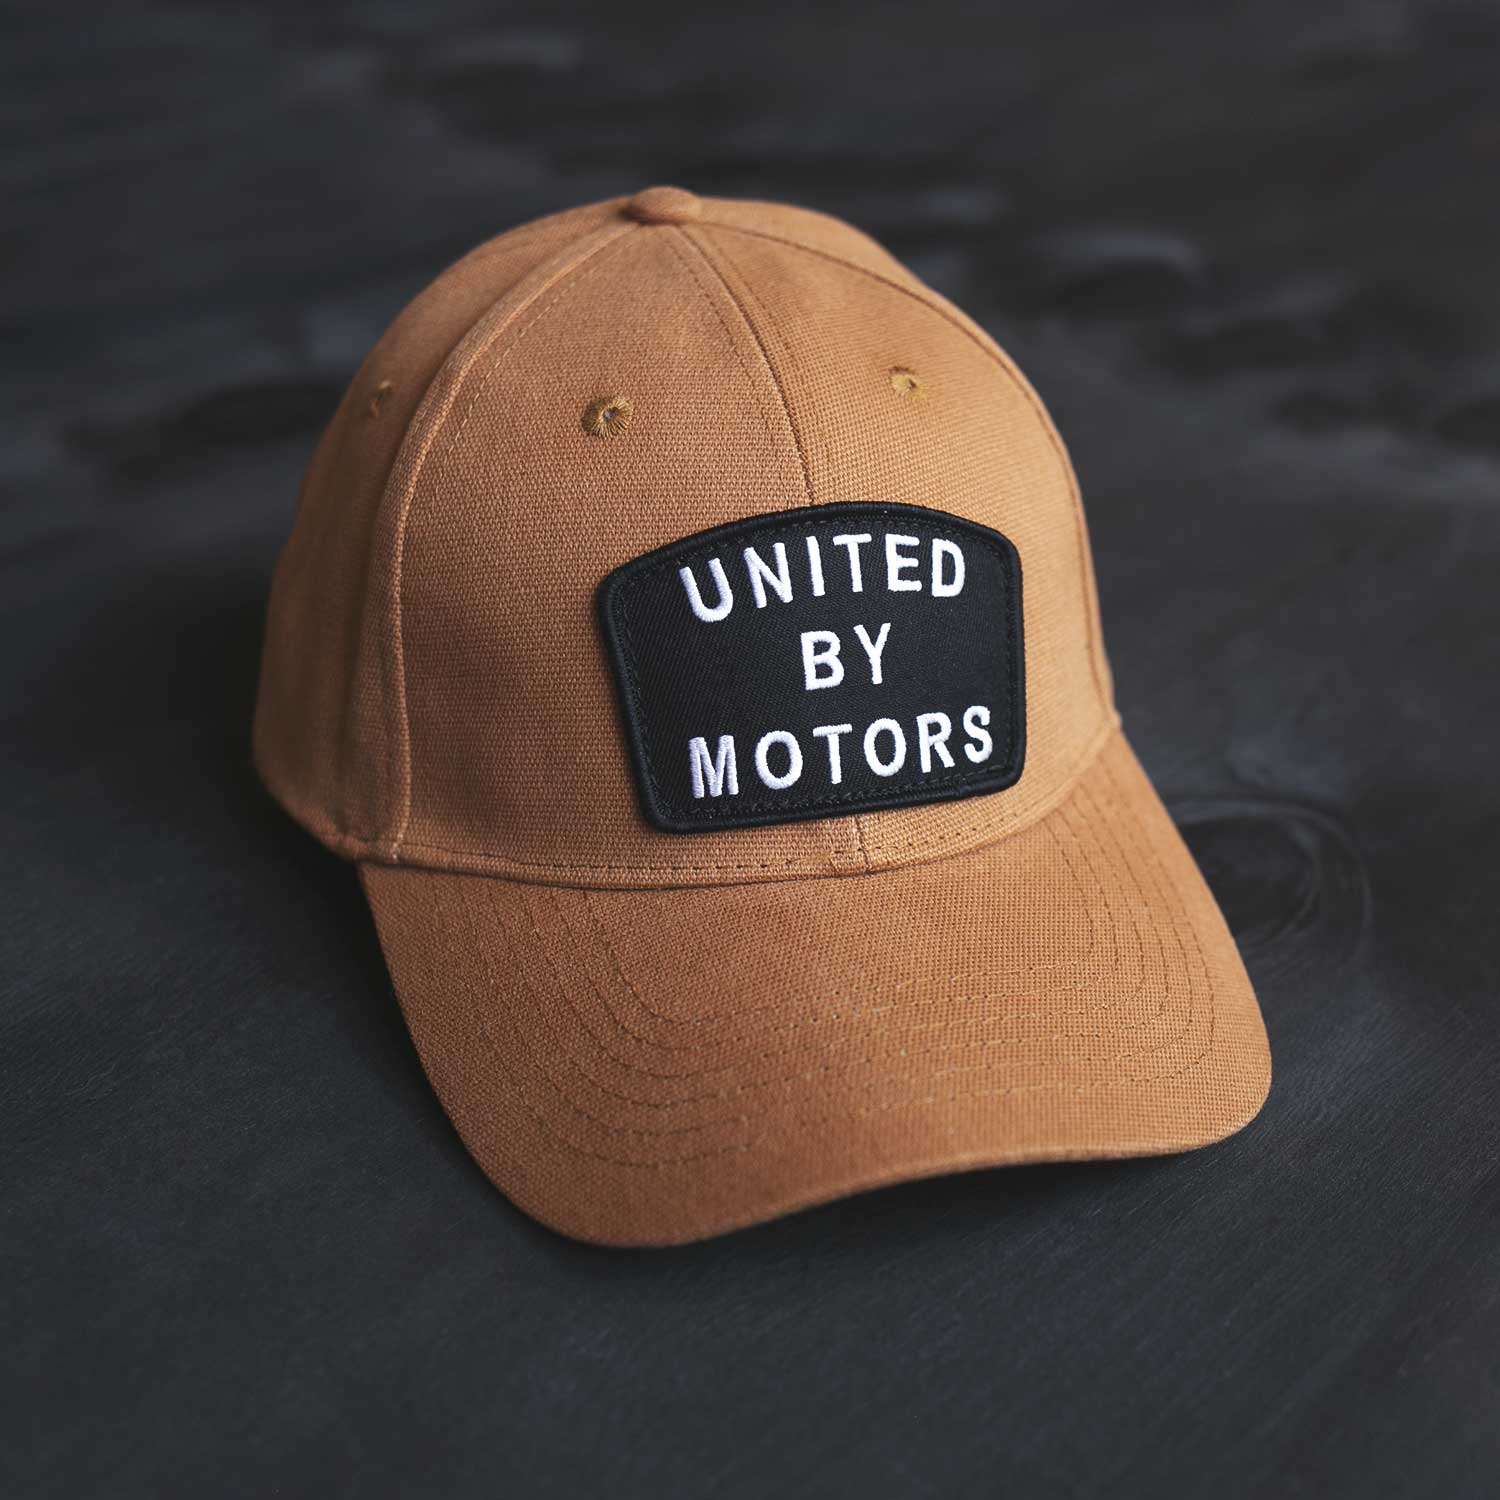 united by motors duck cotton canvas work wear moto inspired hat